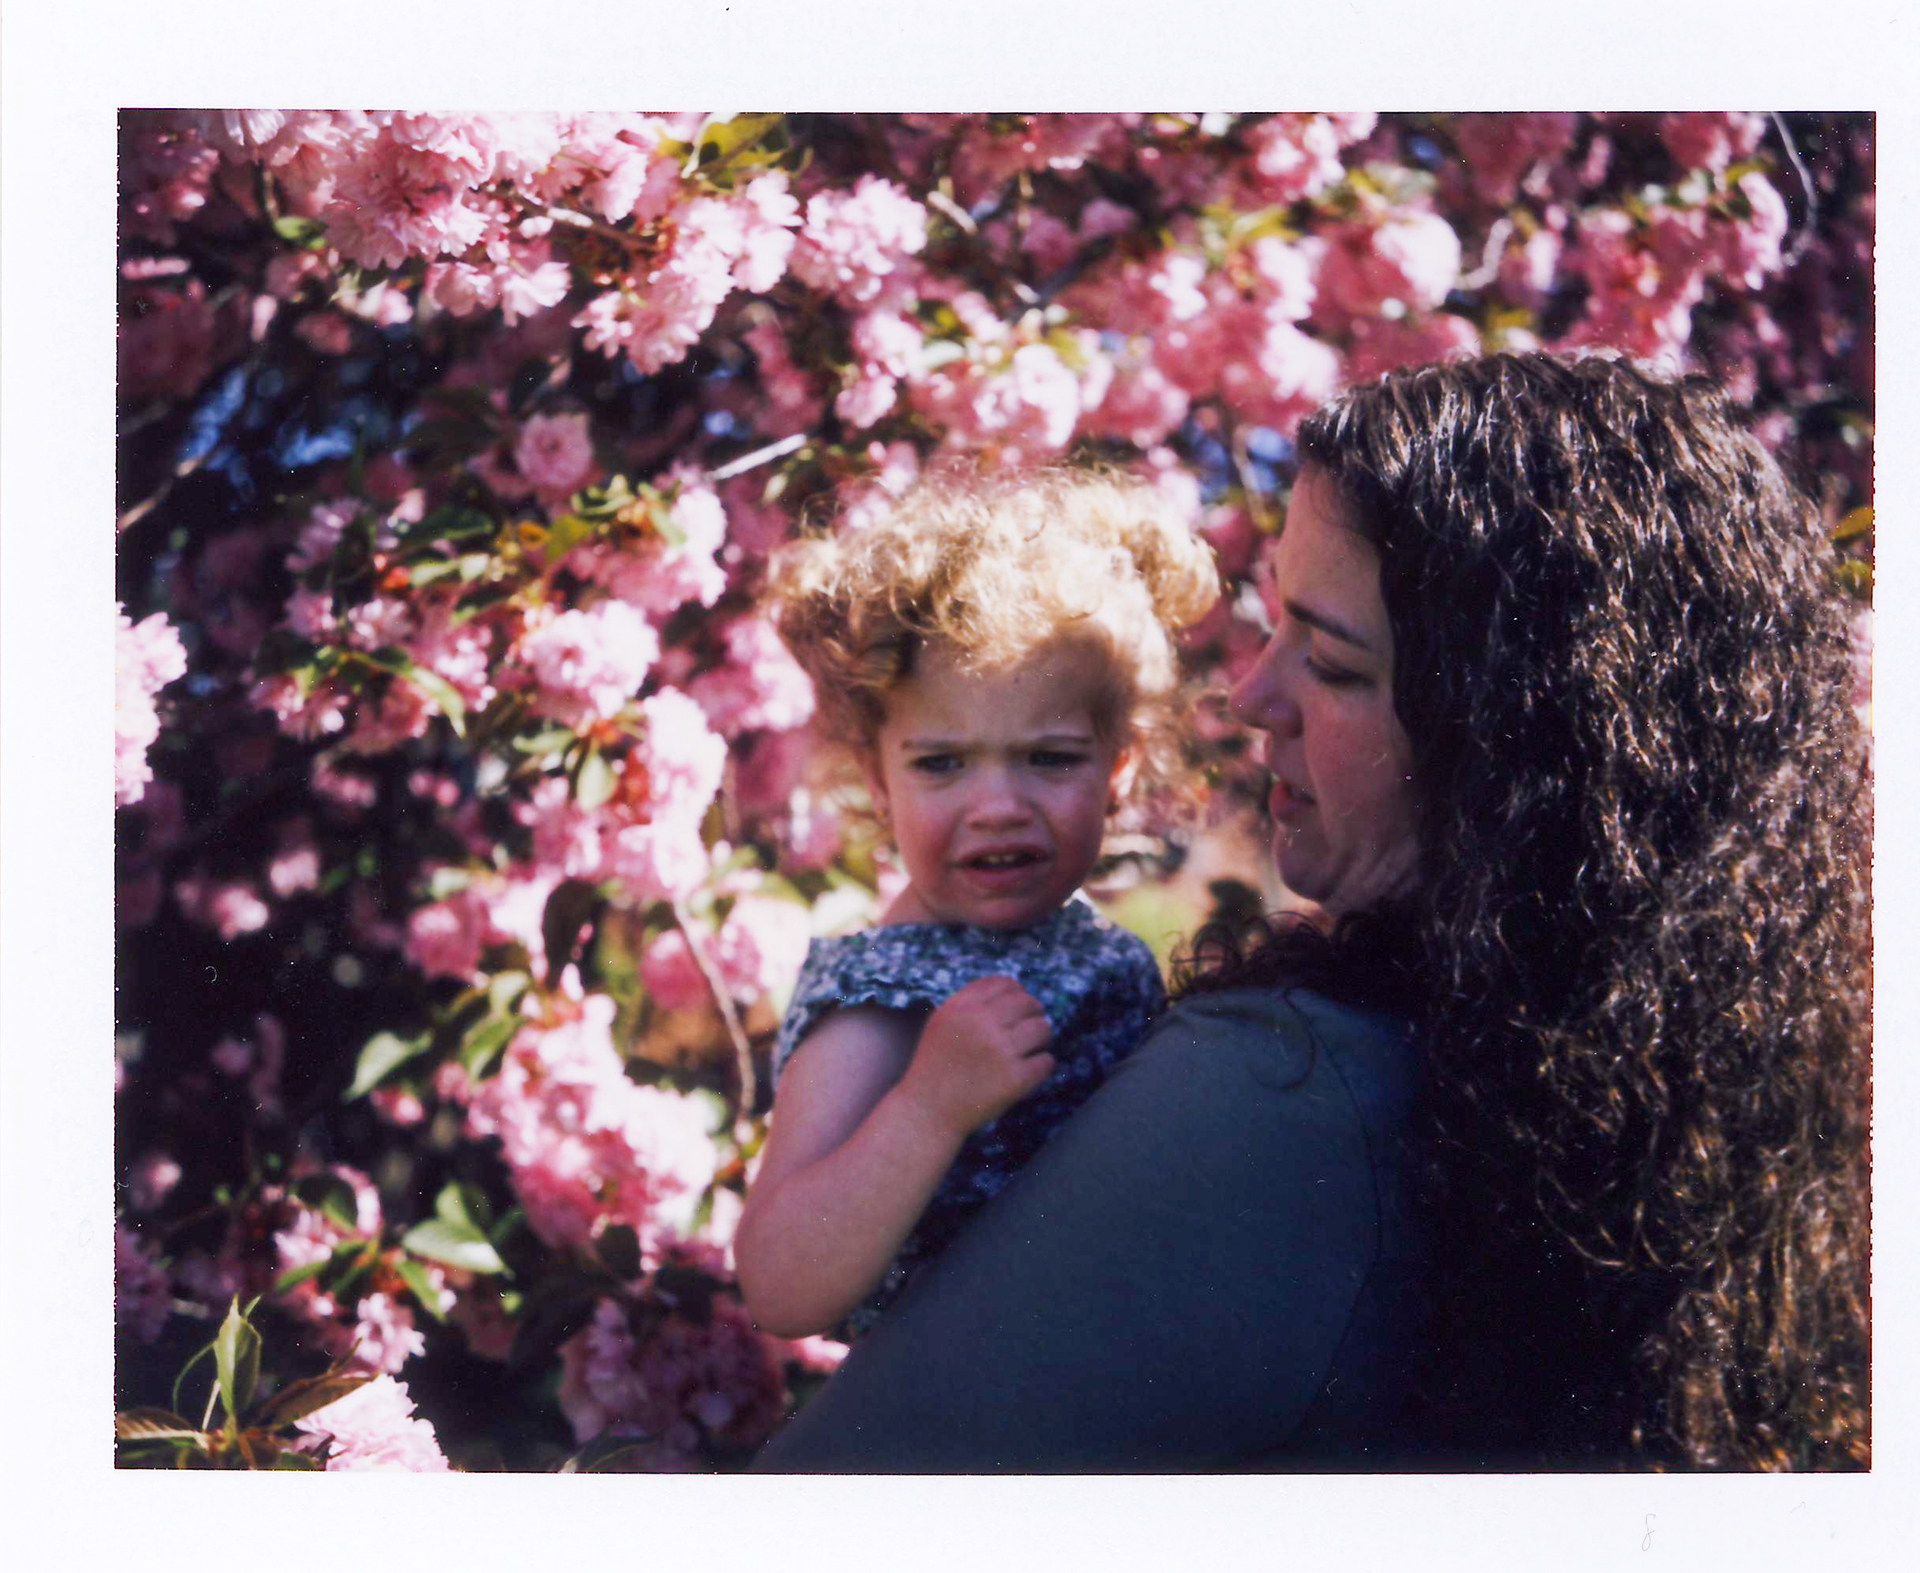 57 Olive, Mom, and the Cherry Blossoms.jpg